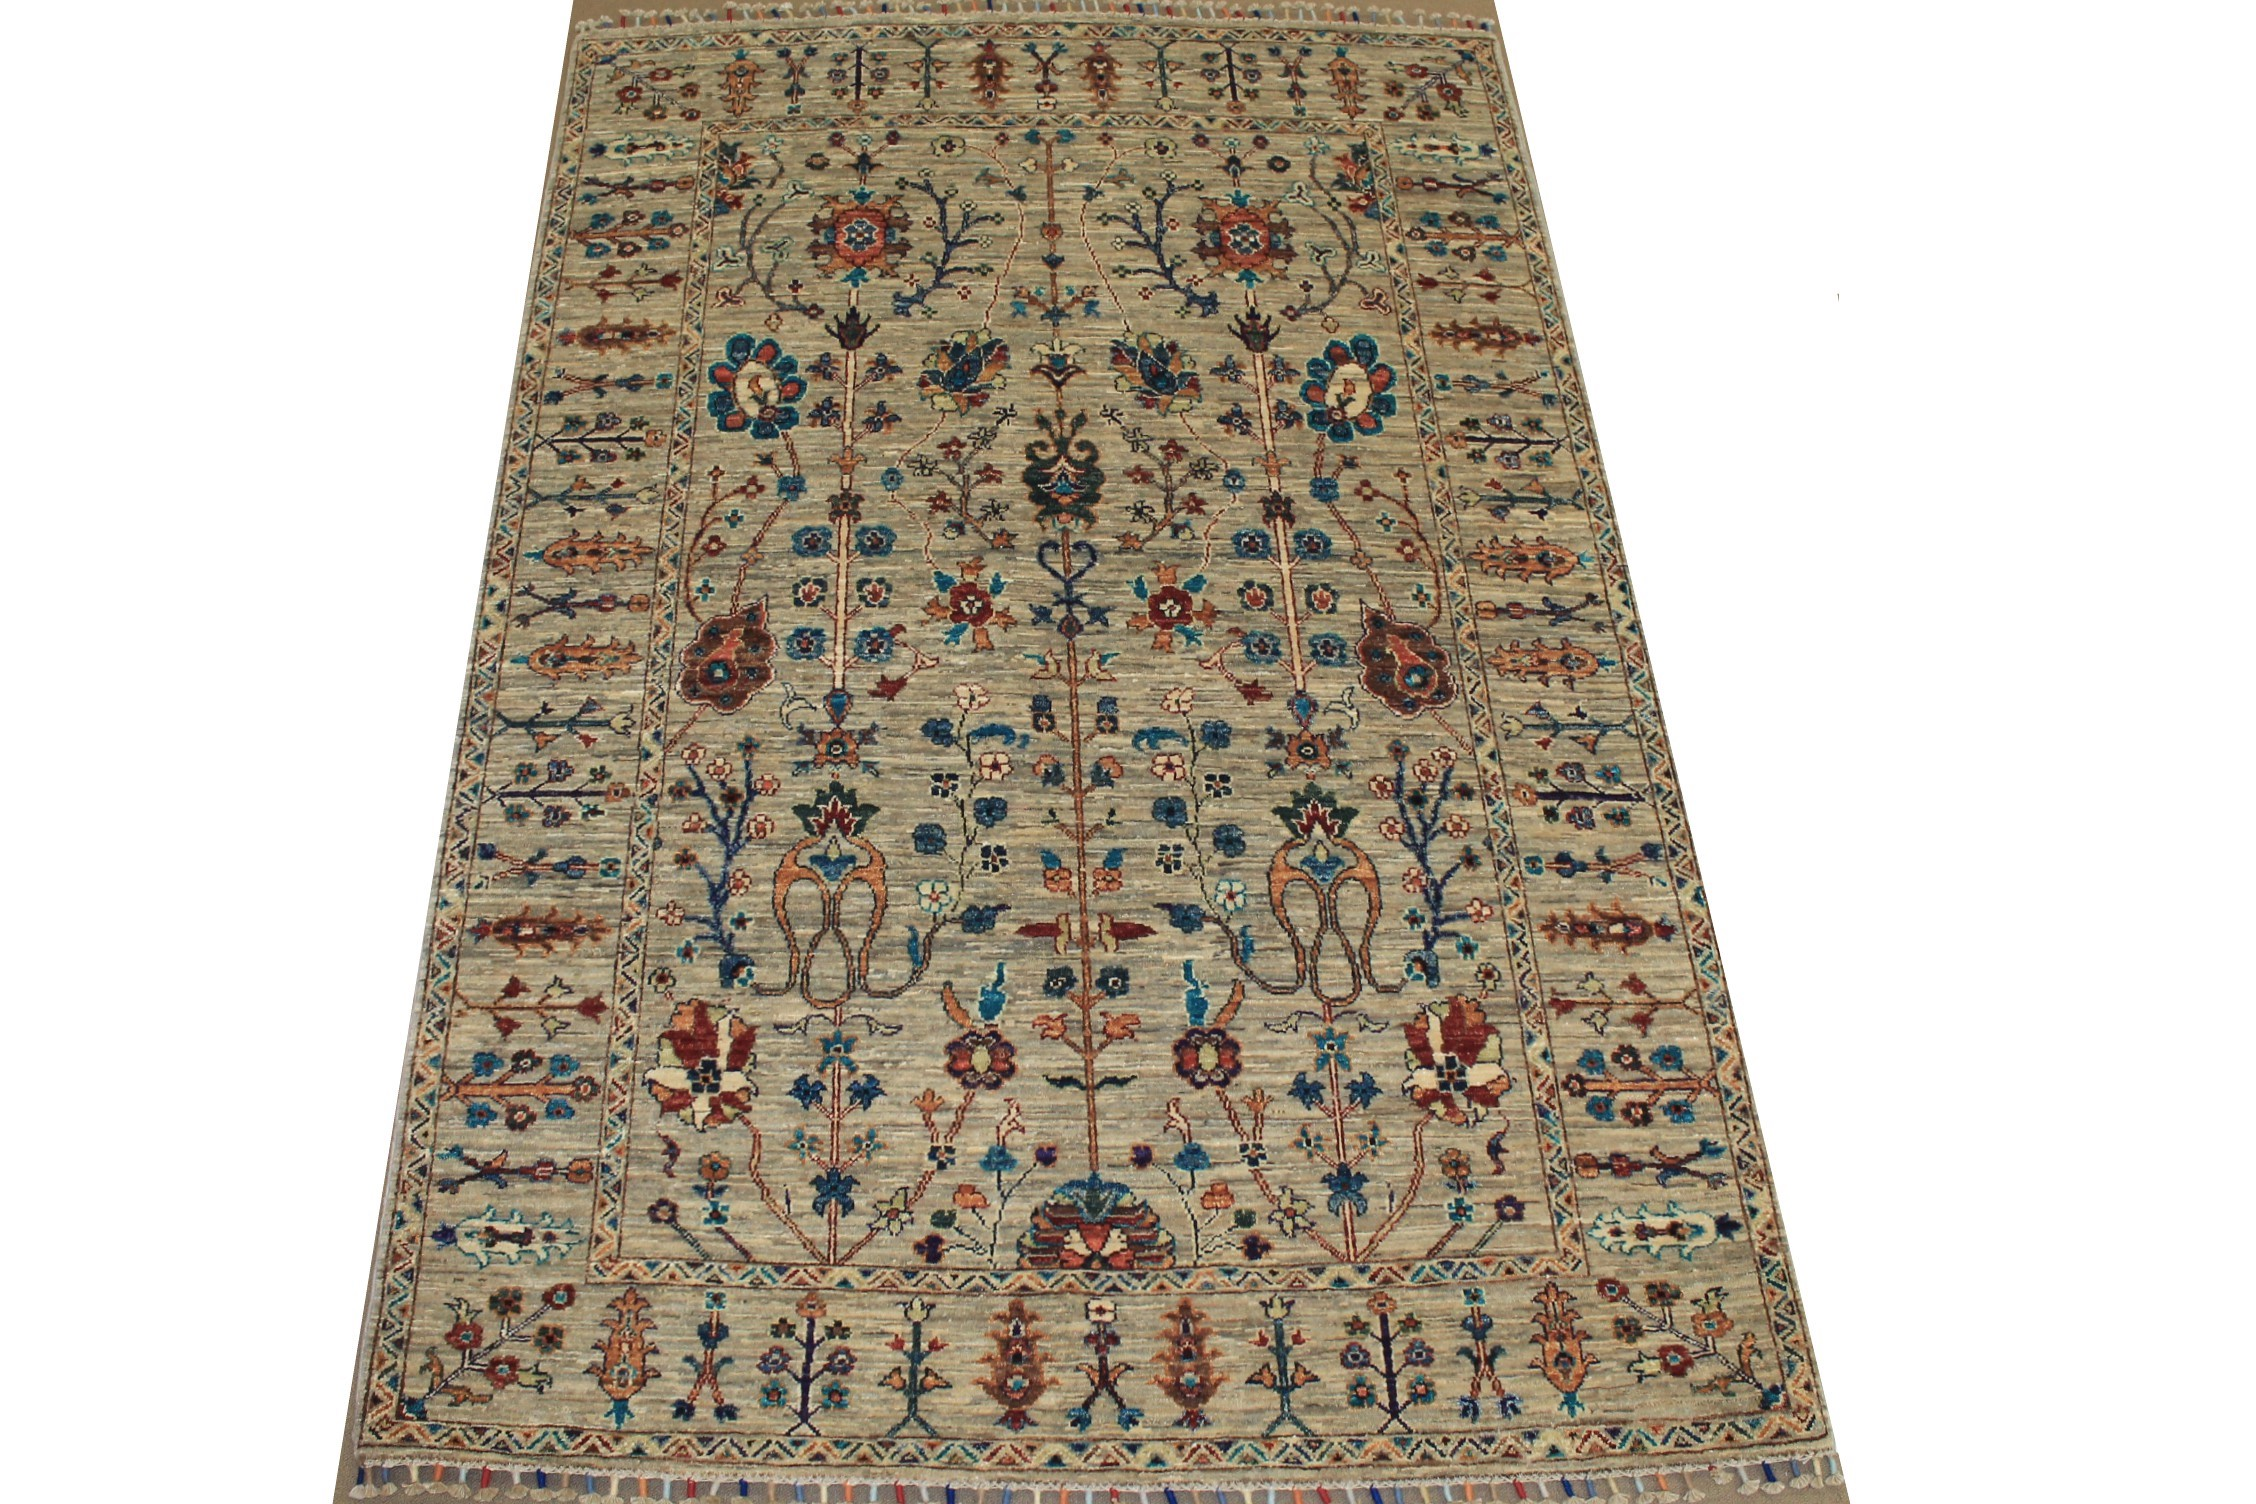 5x7/8 Tribal Hand Knotted Wool Area Rug - MR025310